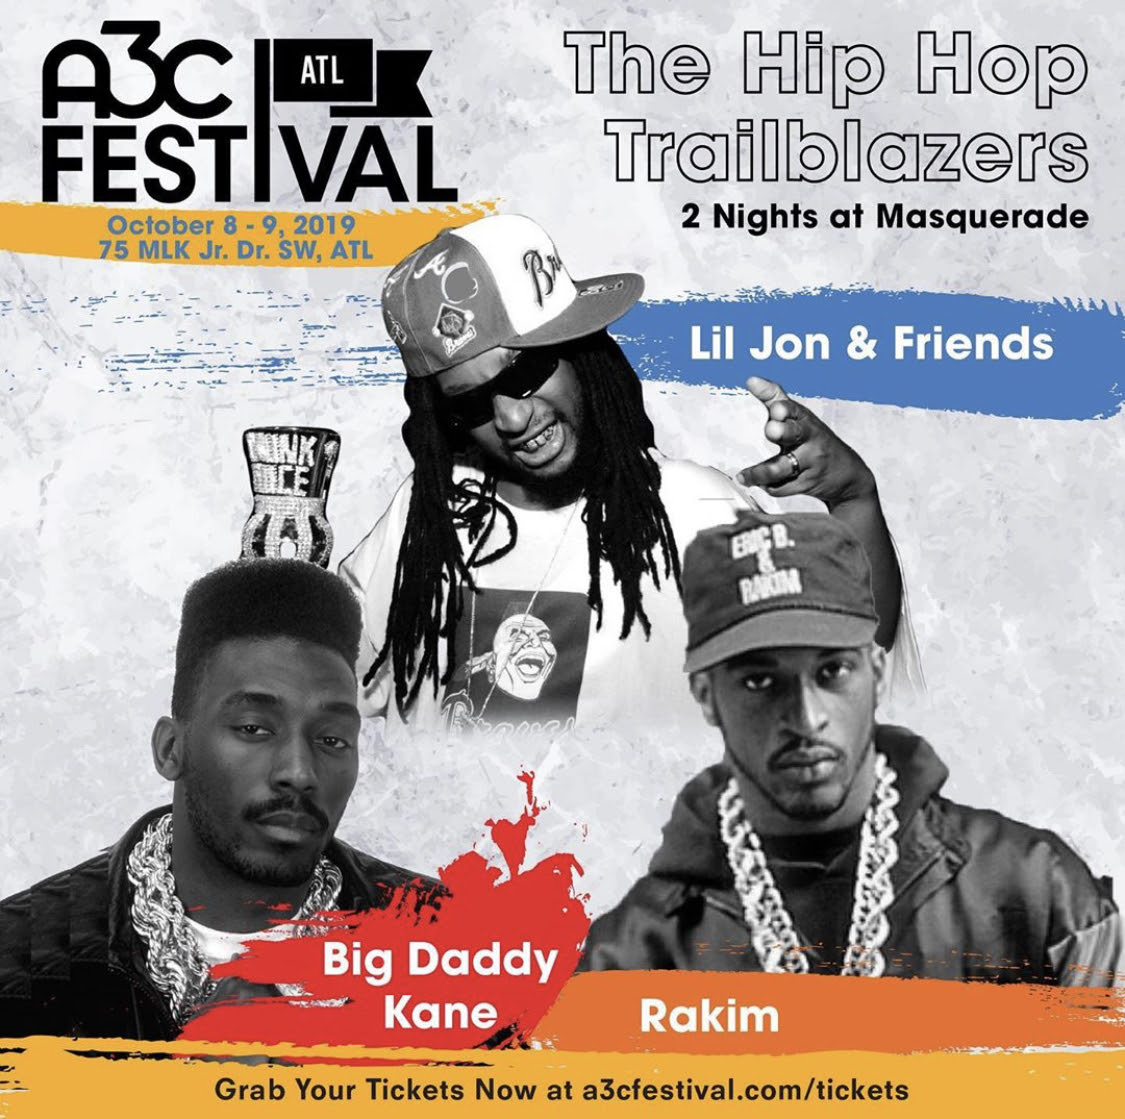 Lil Jon & 2 Hip Hop Legends Added to A3C Festival